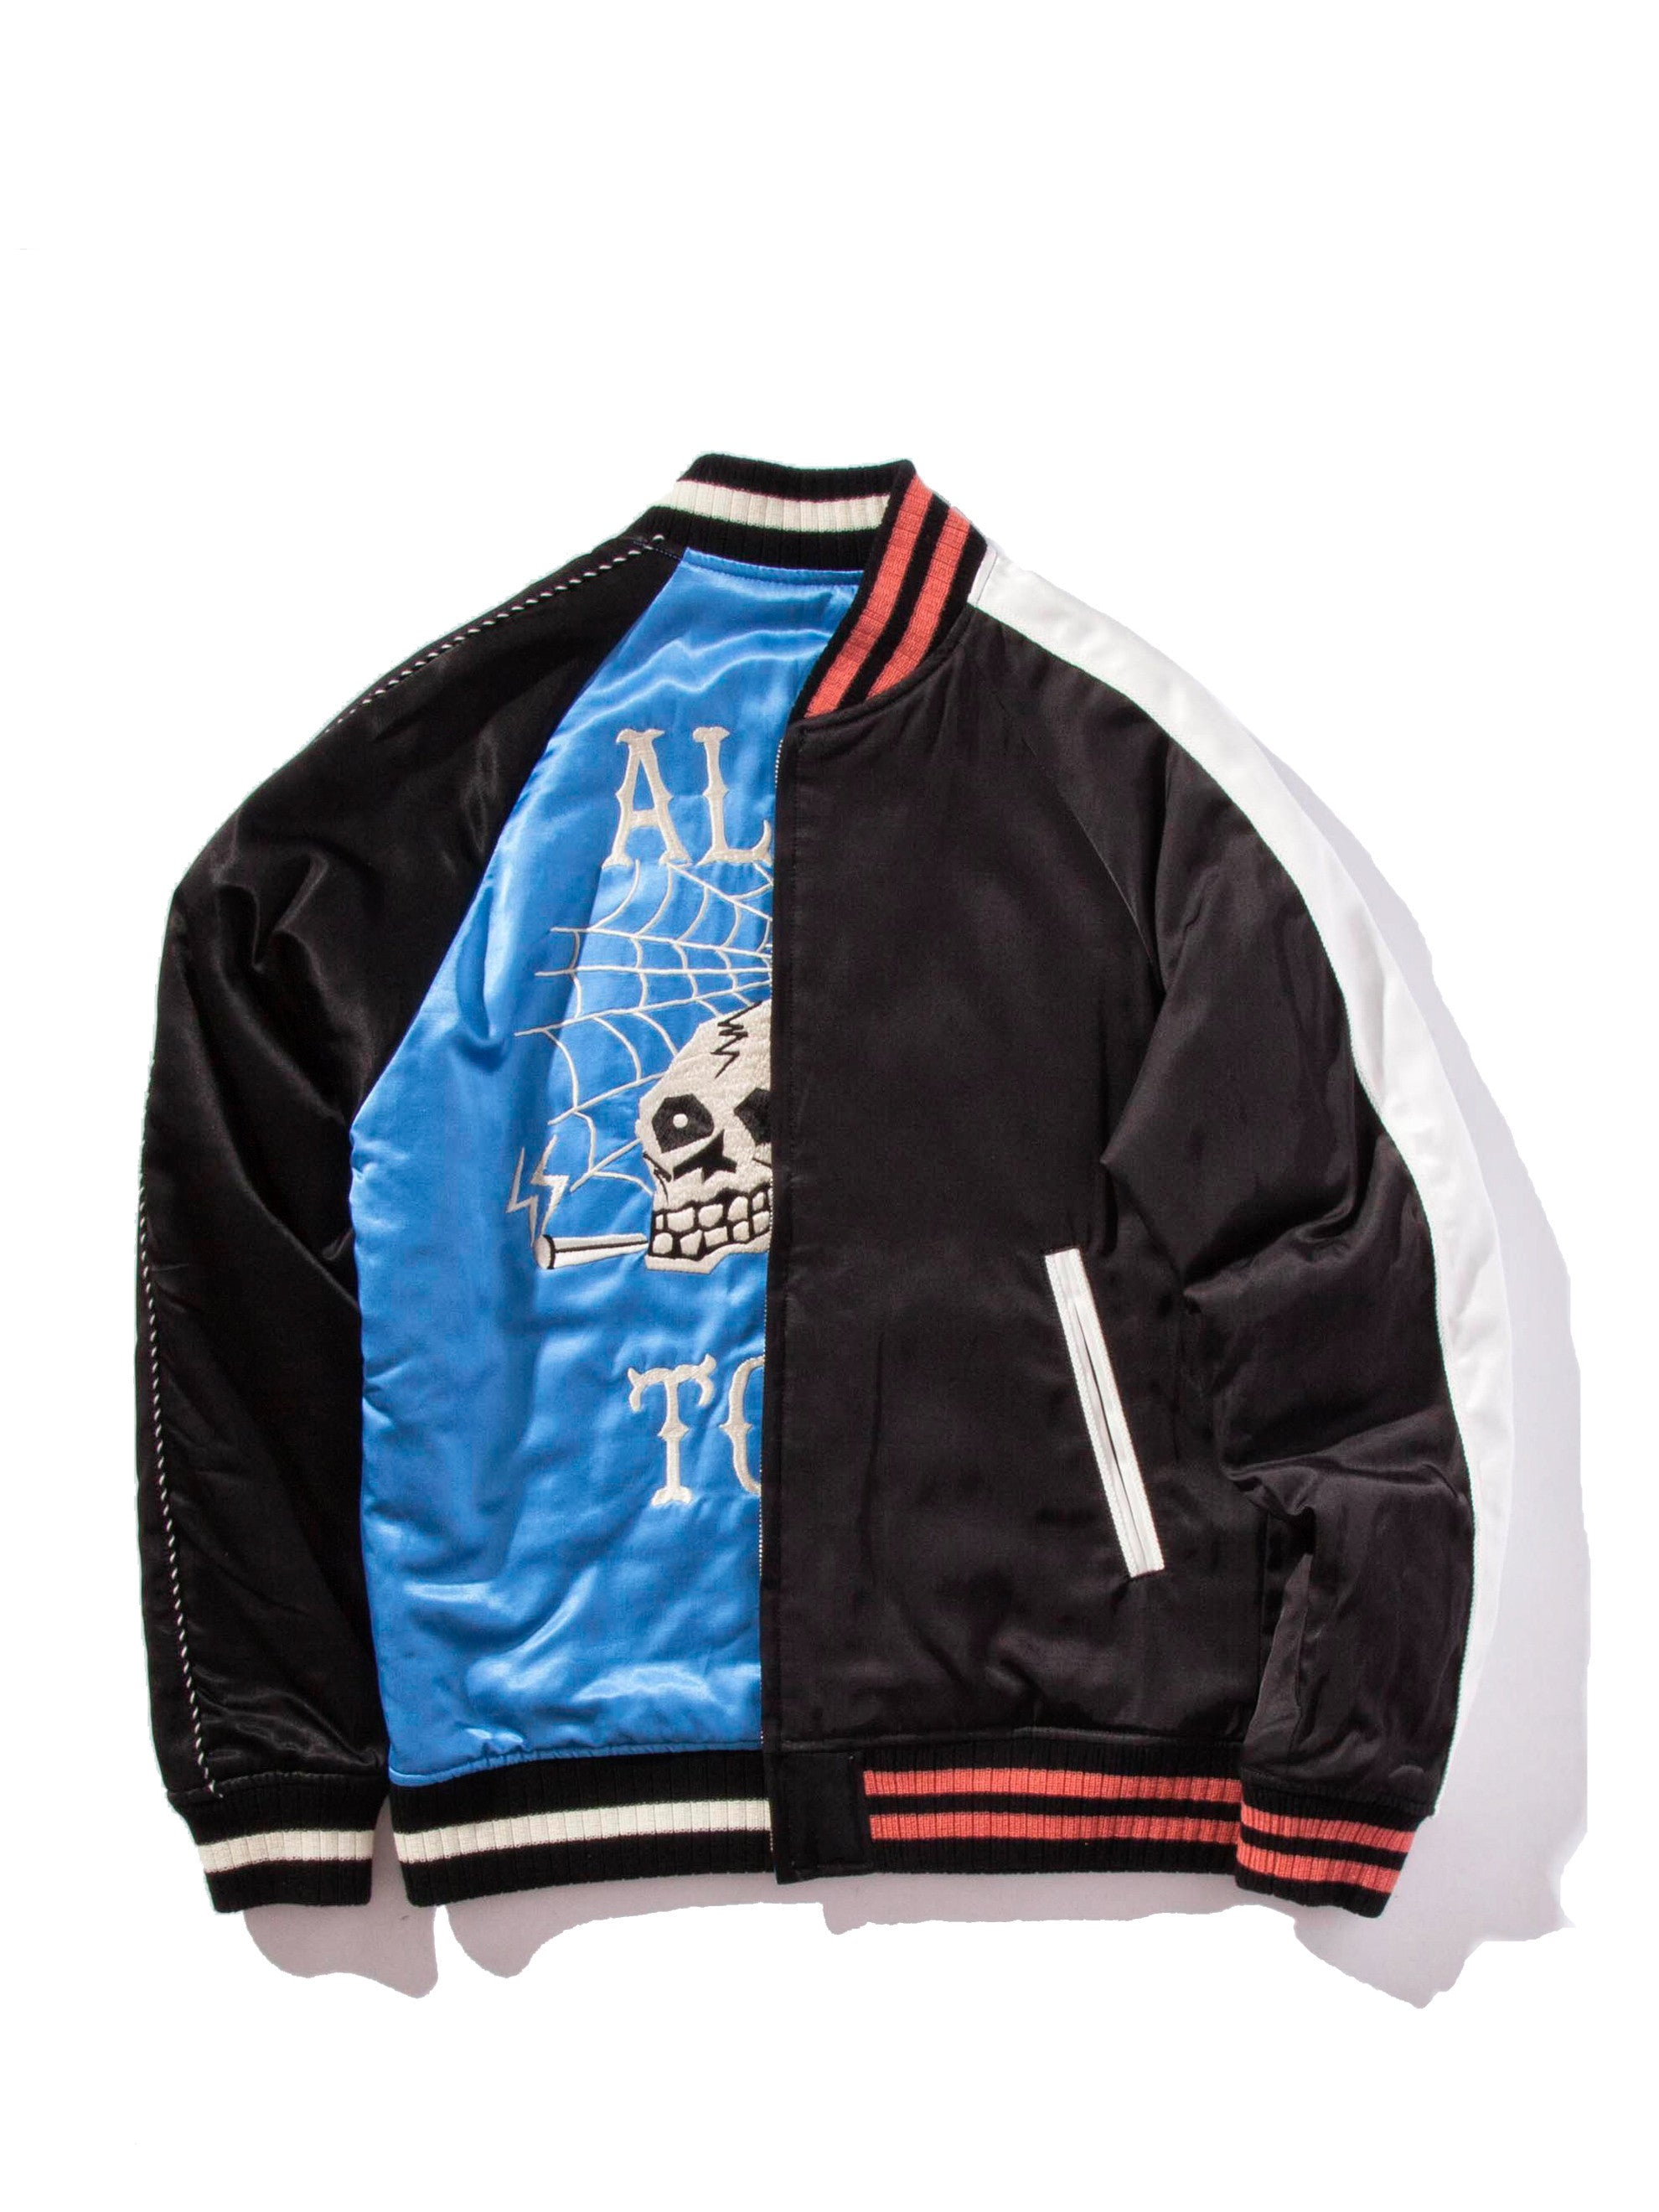 Blue/Black Souvenior Jacket 13